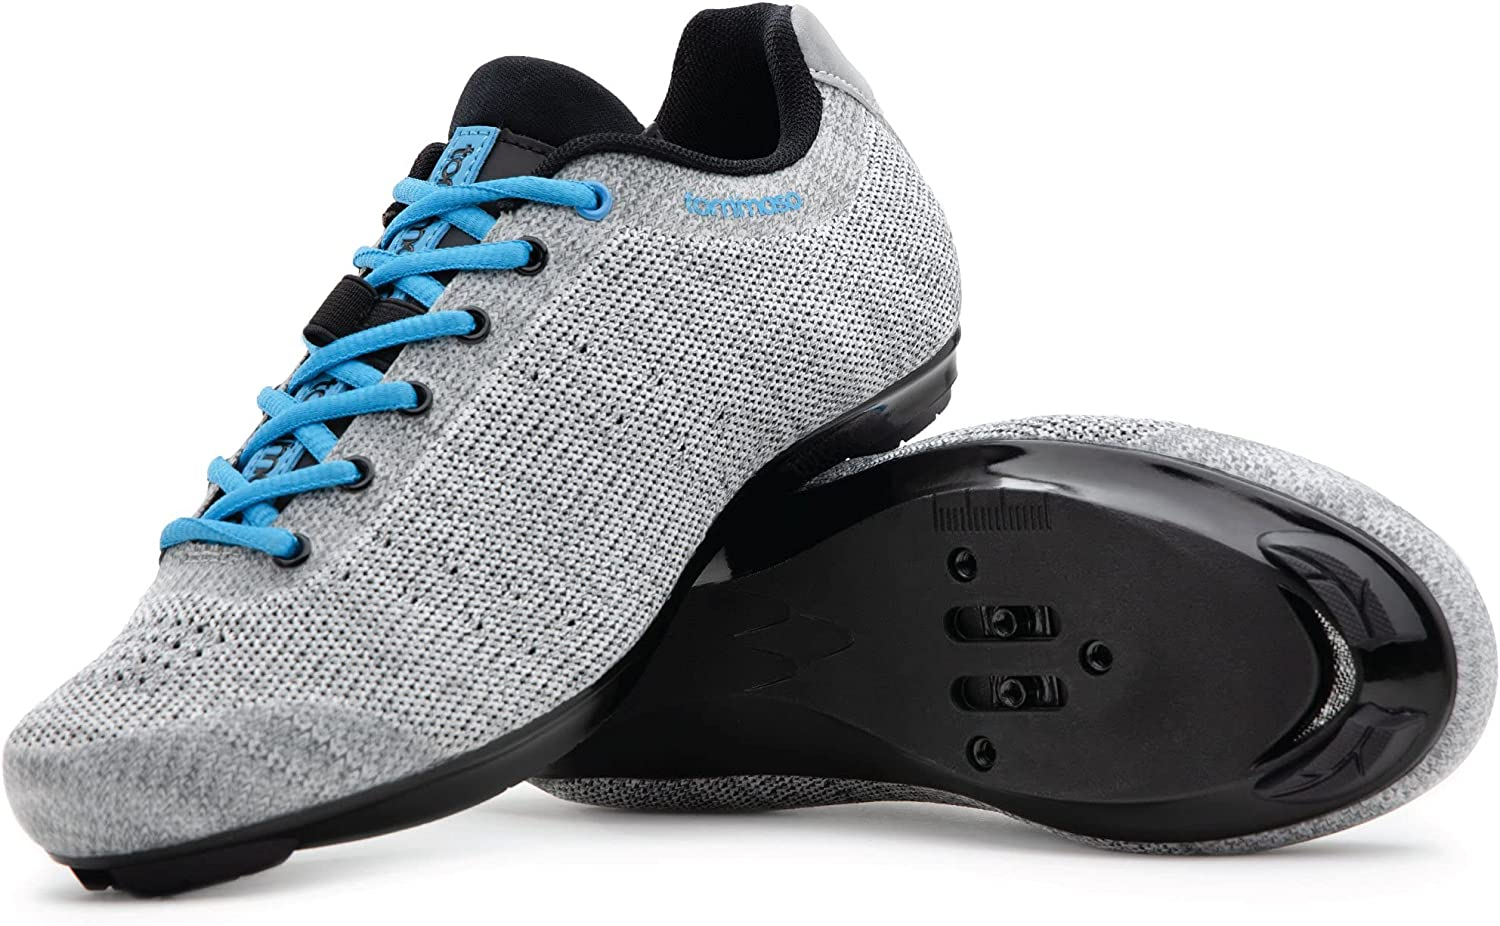 Tommaso Pista Aria Knit Women's Cycling Class Shoe Indoor Popular shop is the lowest price Challenge the lowest price of Japan ☆ challenge Ready